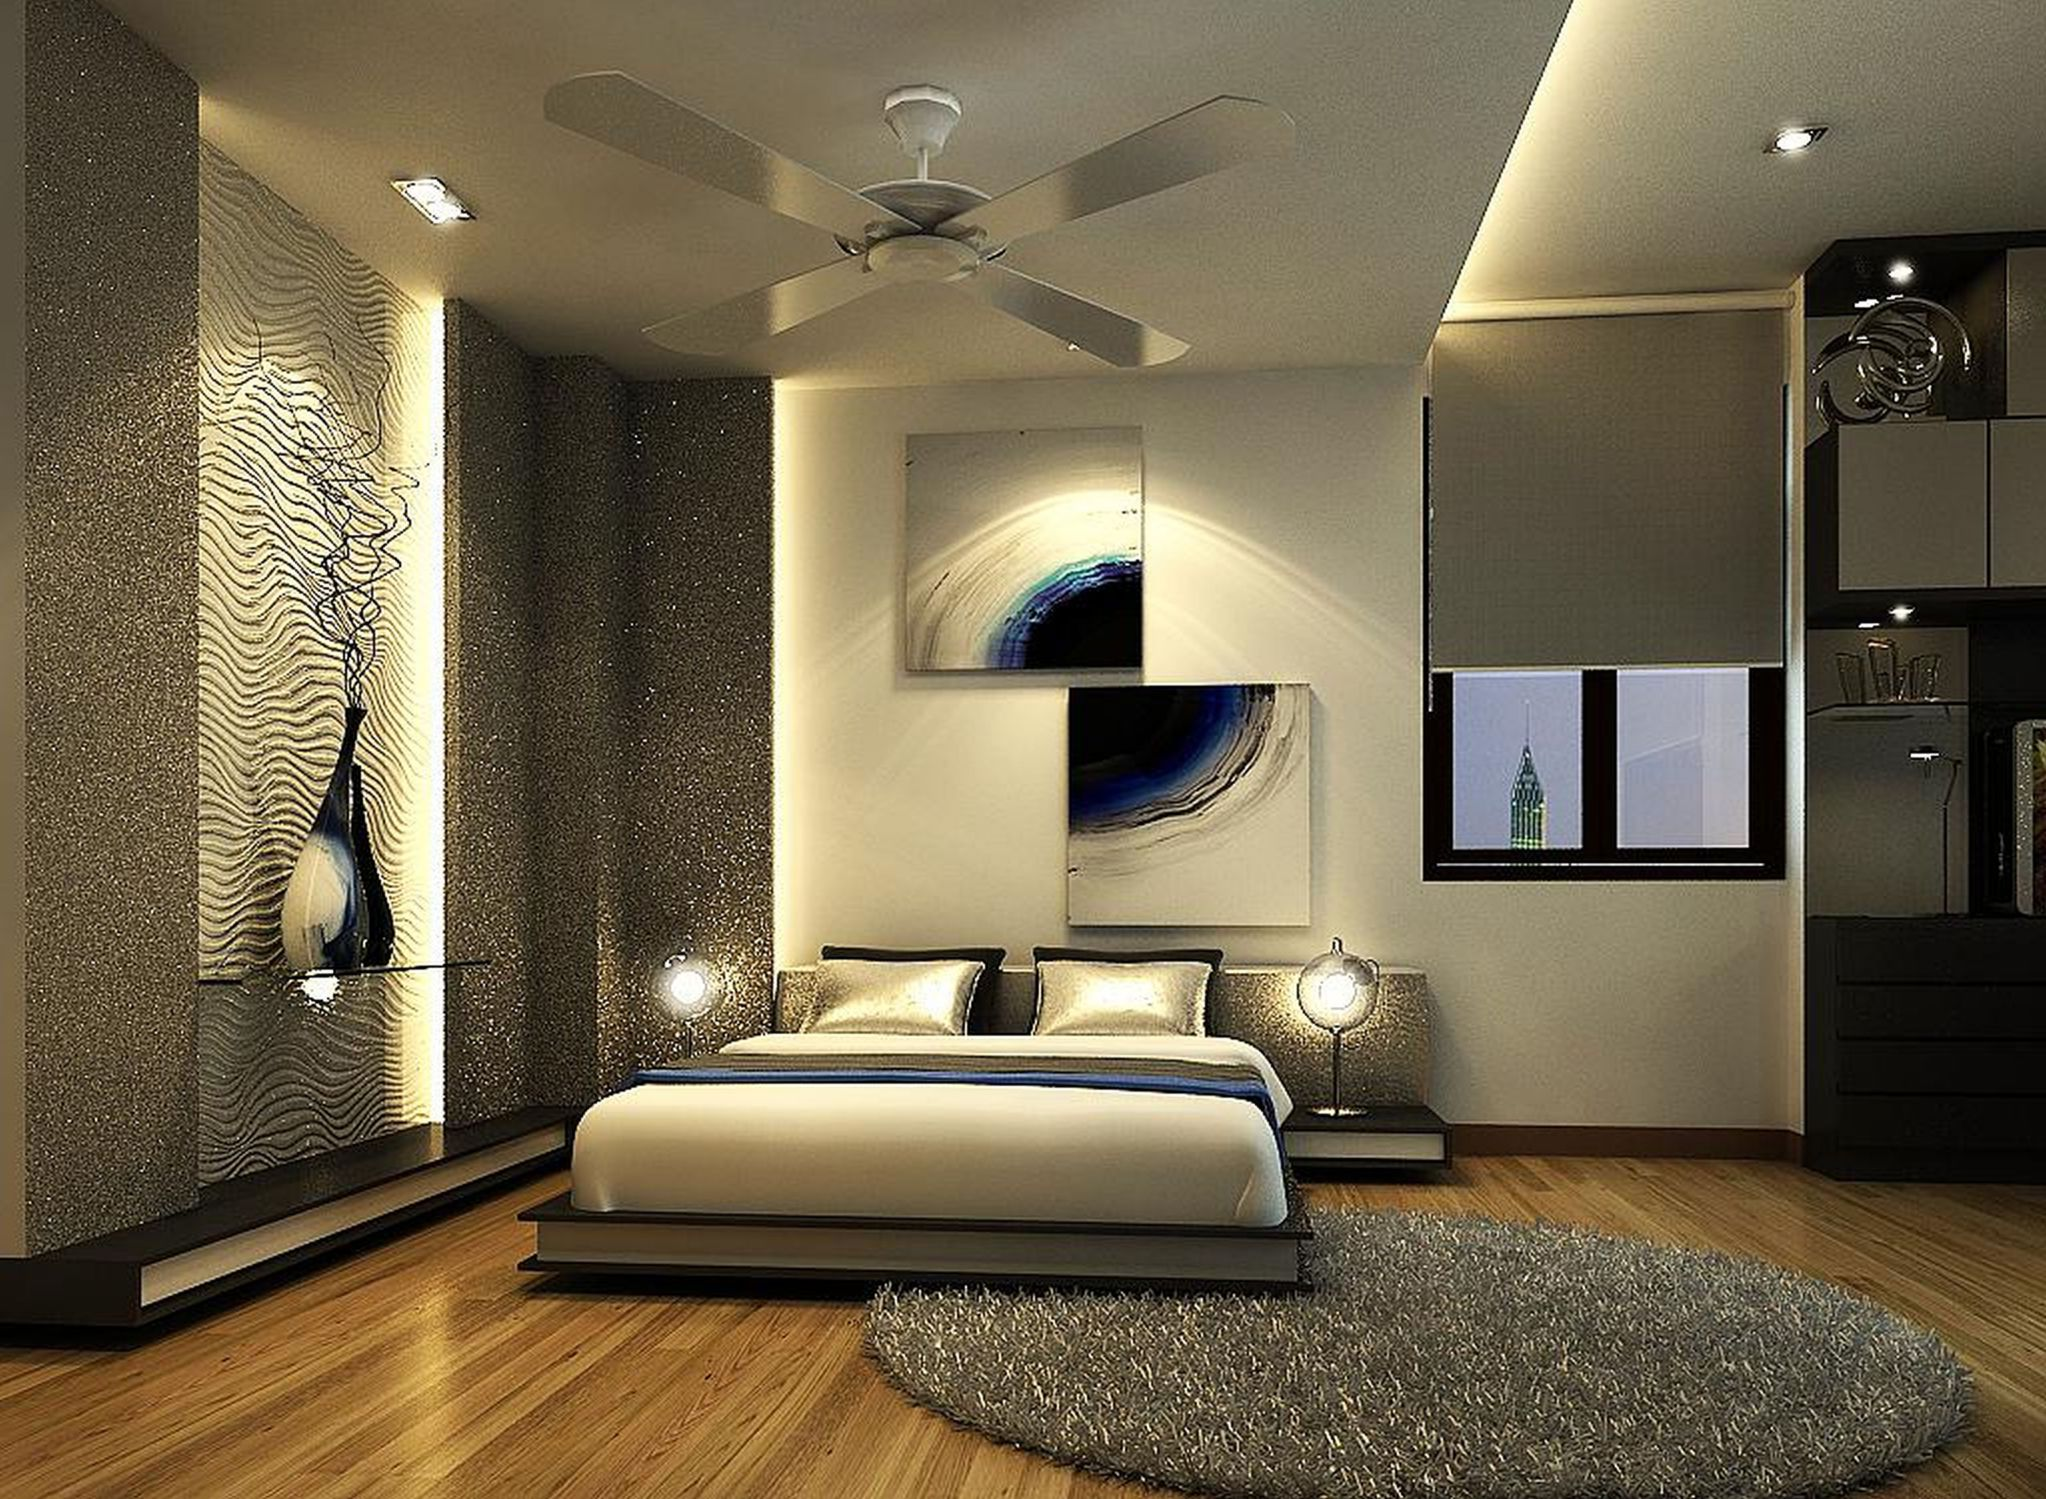 Astounding Design Of The Grey Rugs Ideas With Brown Wooden Floor And Some Pics On The Wall Of The Modern Bedroom Ideas